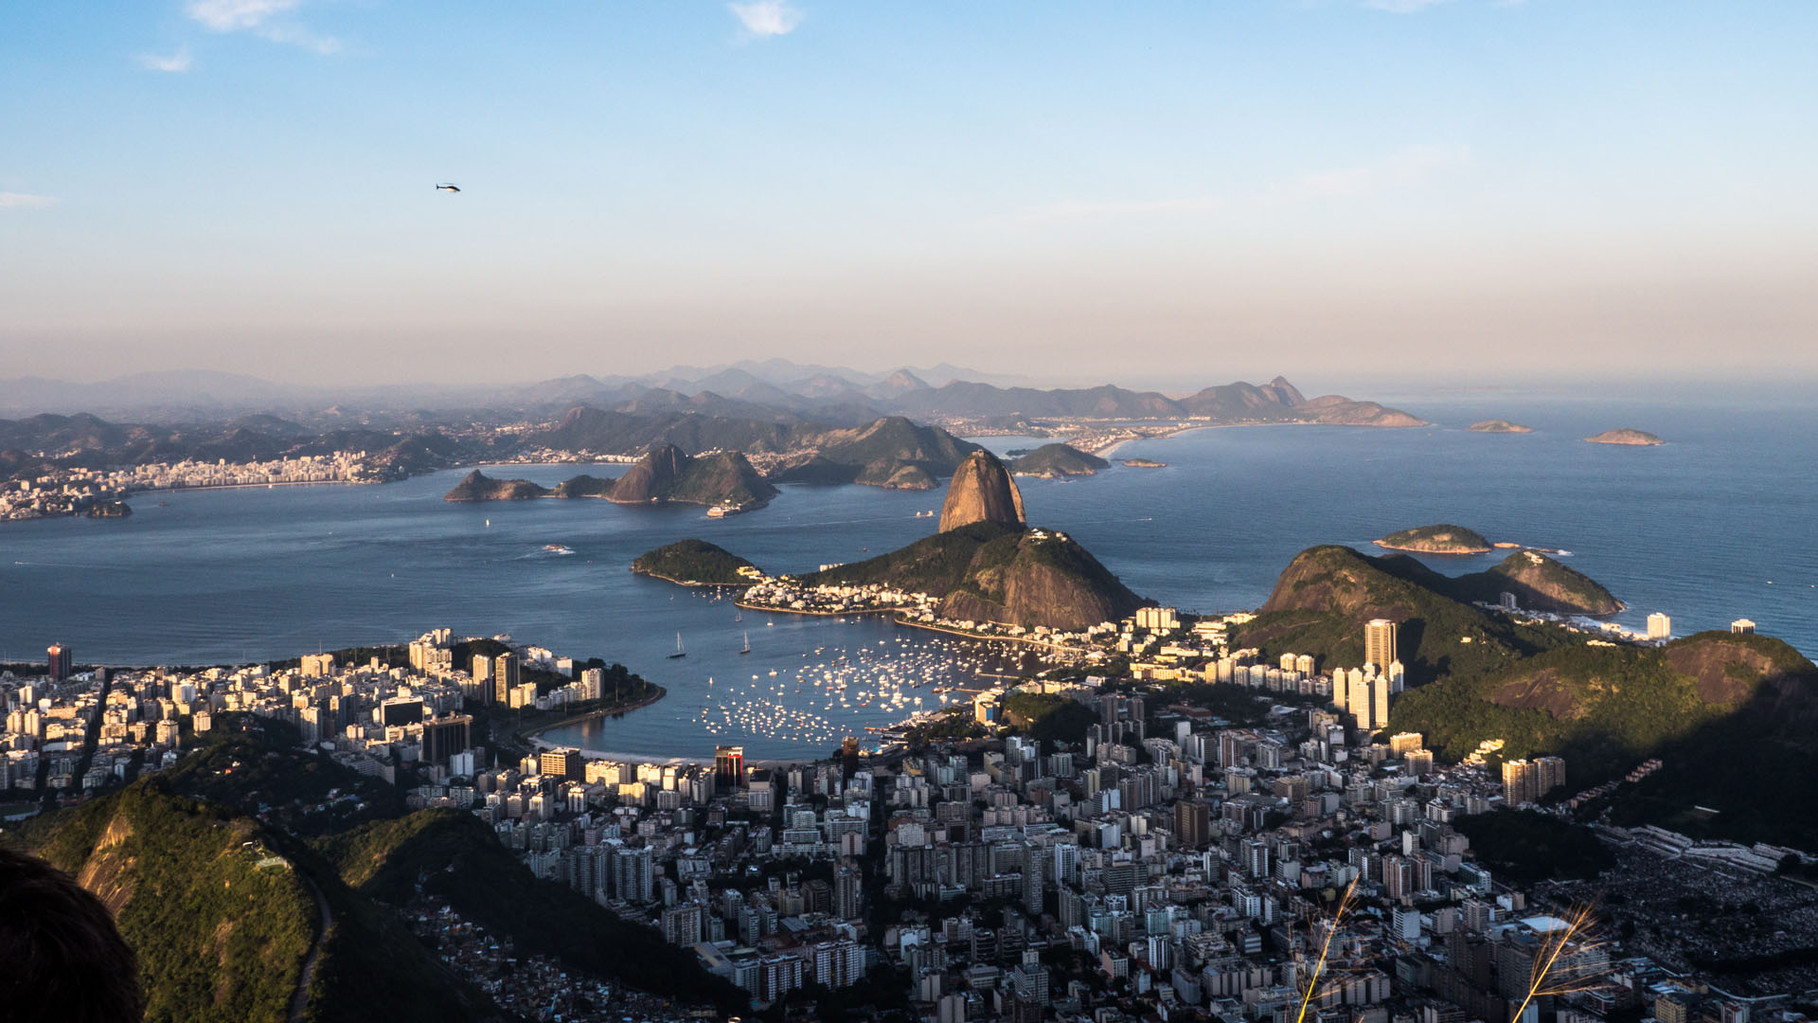 Rio (Sugarloaf in the center of the picture), panoramic view from Corcovado (Christ the Redeemer statue)